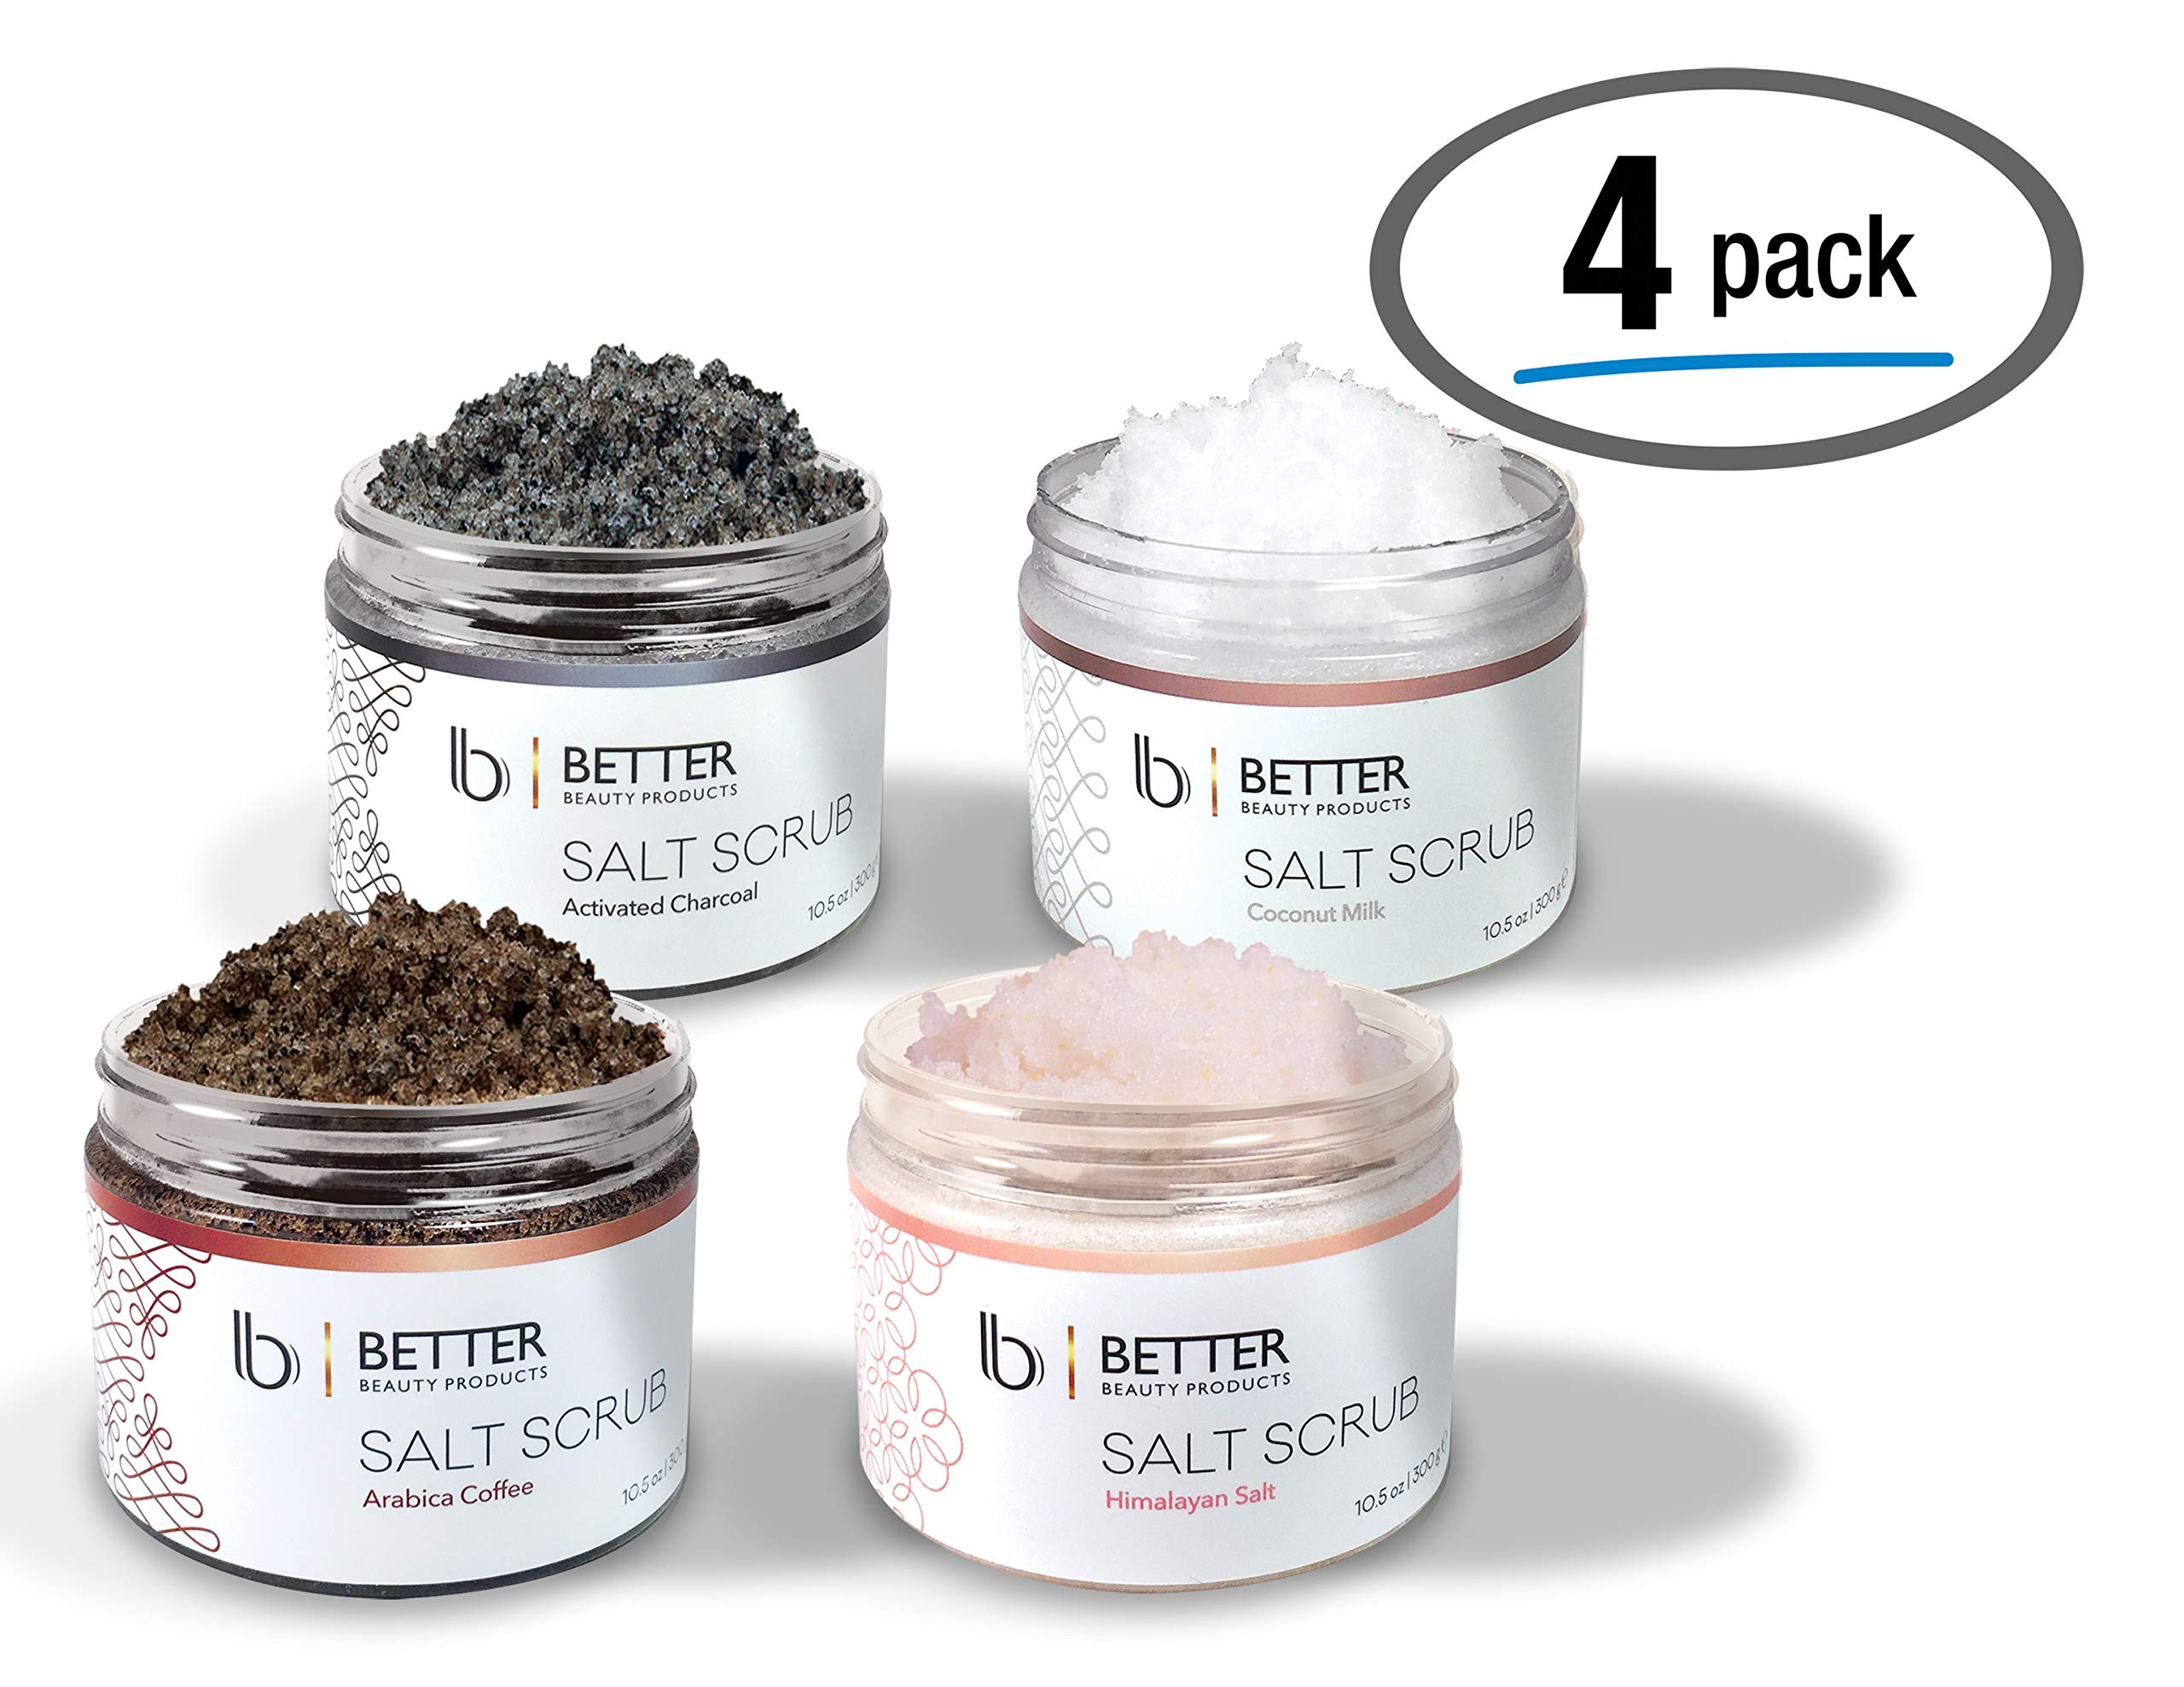 4 Pack Body Salt Scrubs by Better Beauty Products, Coconut Milk, Himalayan Salt, Arabica Coffee, Activated Charcoal SCRUBS, 10.5 oz Each, All In One Complete Body Scrub Pack